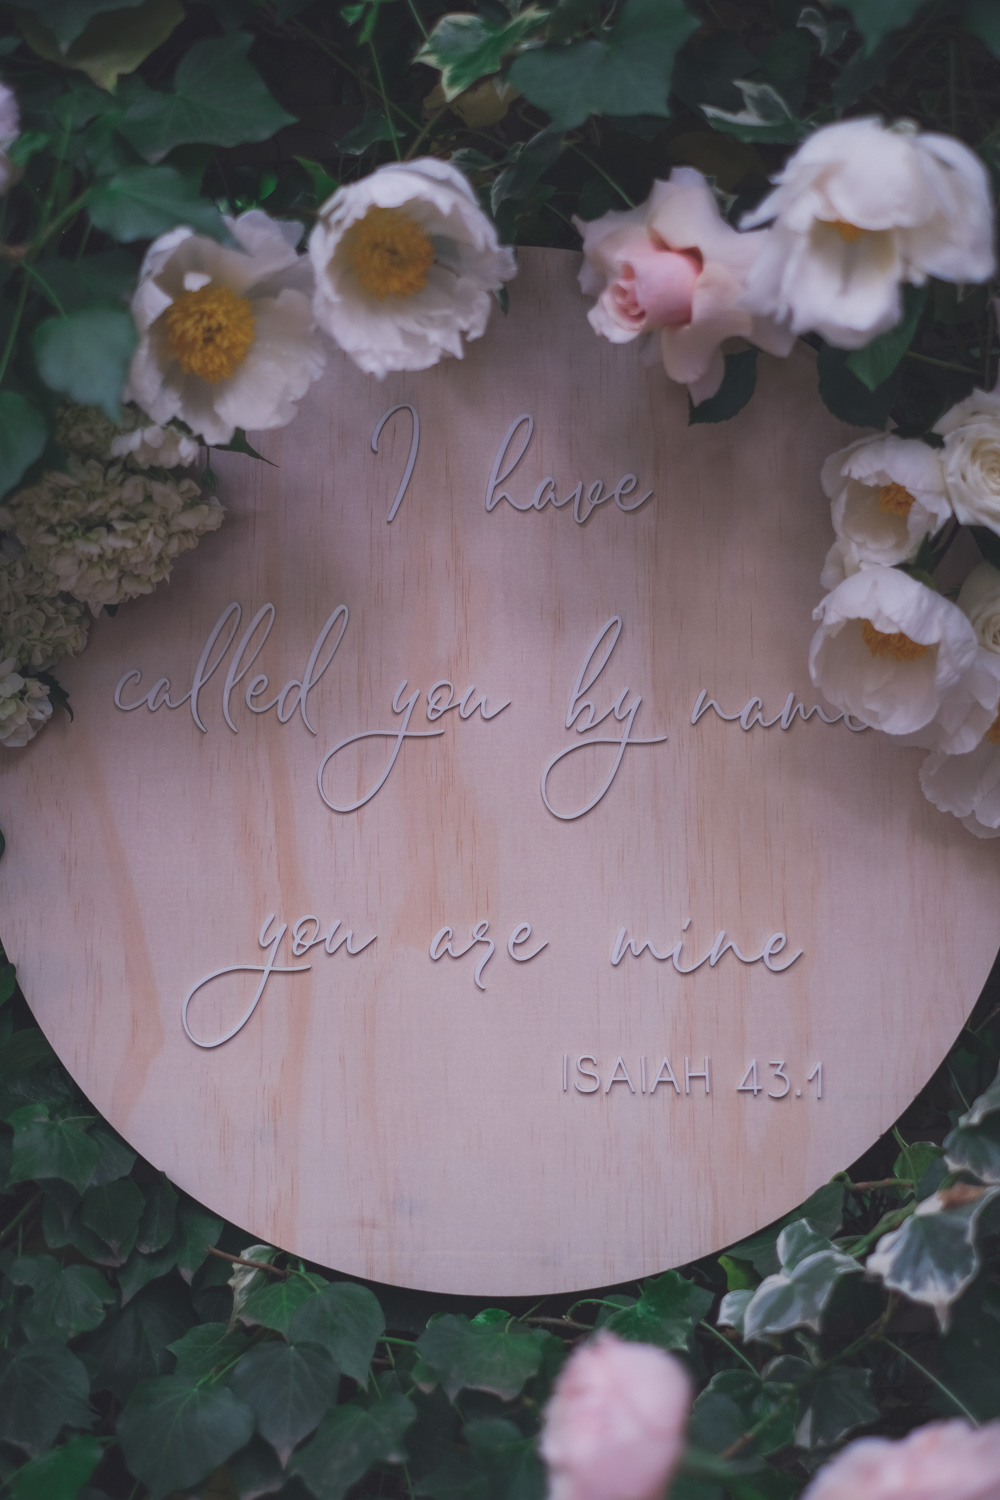 Bible verse engraved on wooden sign for Goldfields Girl Baby Christening Blessing Dedication Day